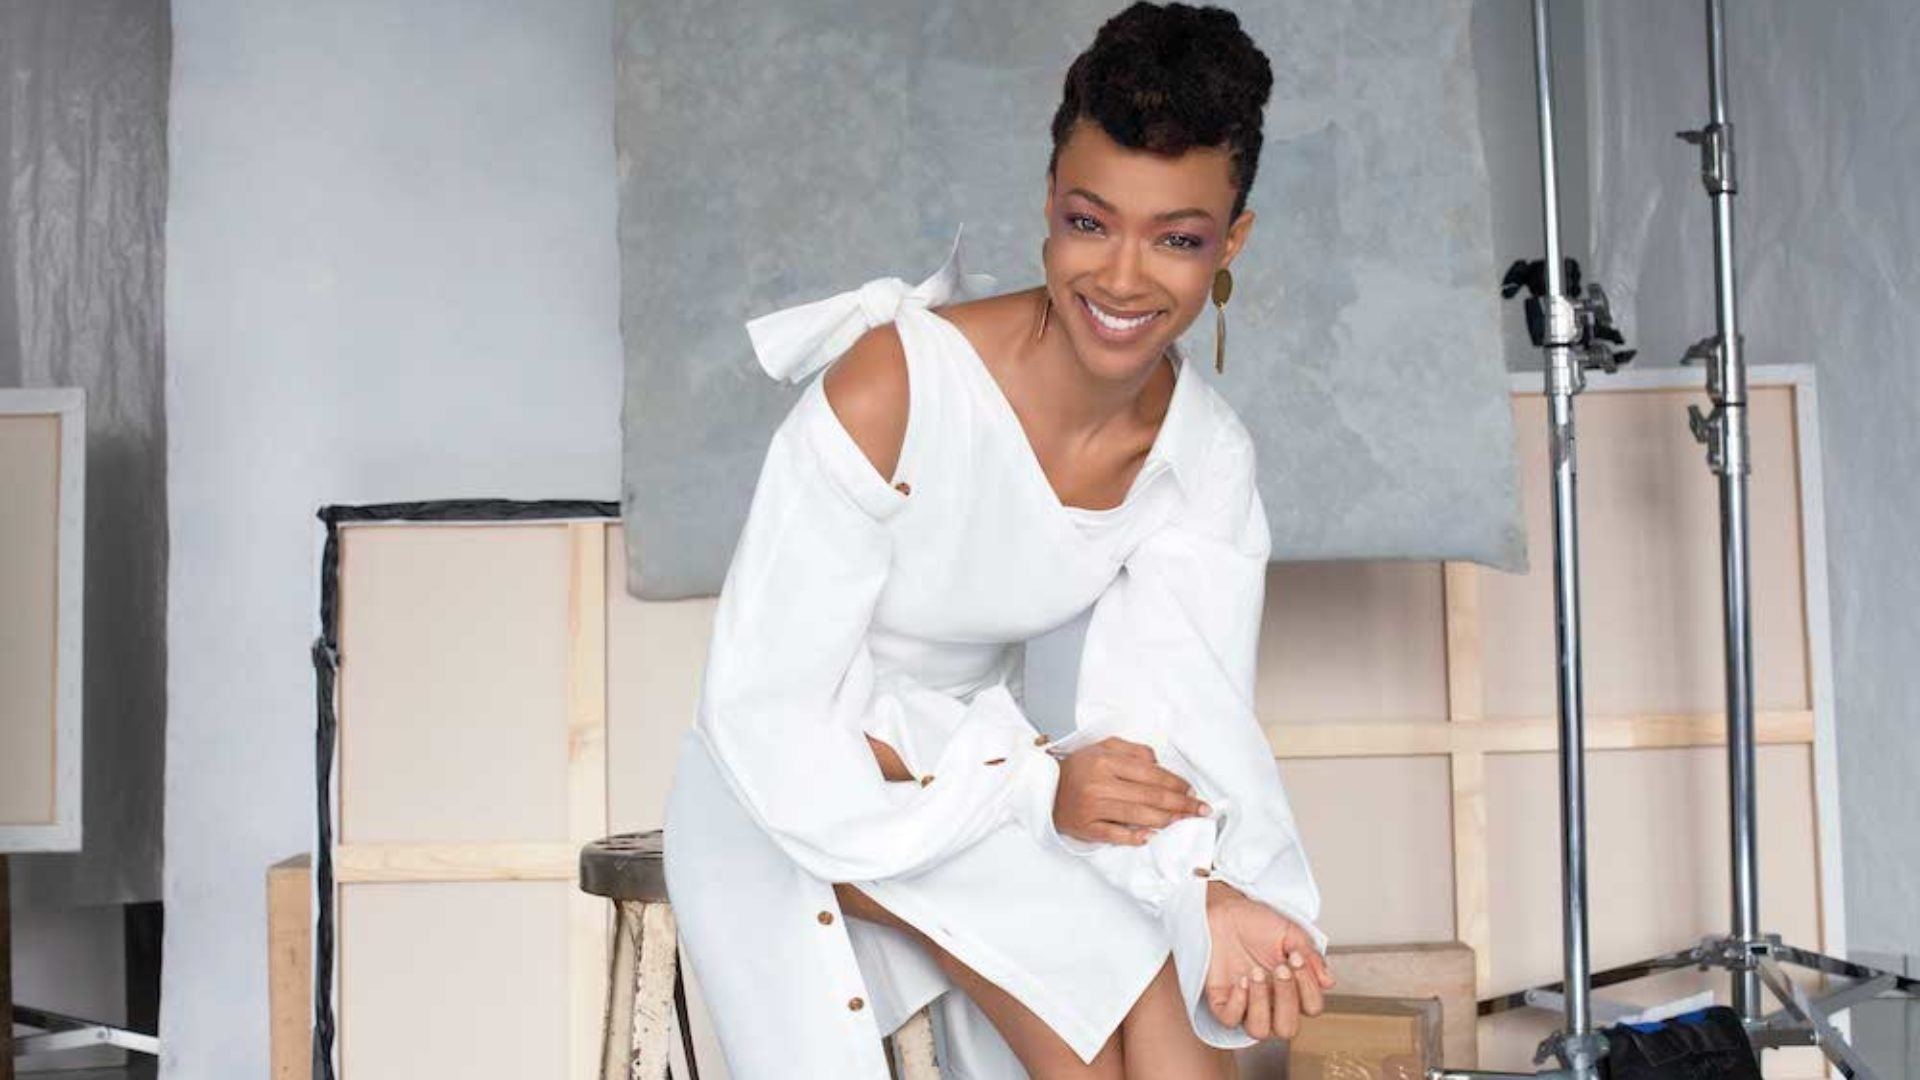 Sonequa Martin-Green Is A Black Woman Who Knows What Its Like To Be First